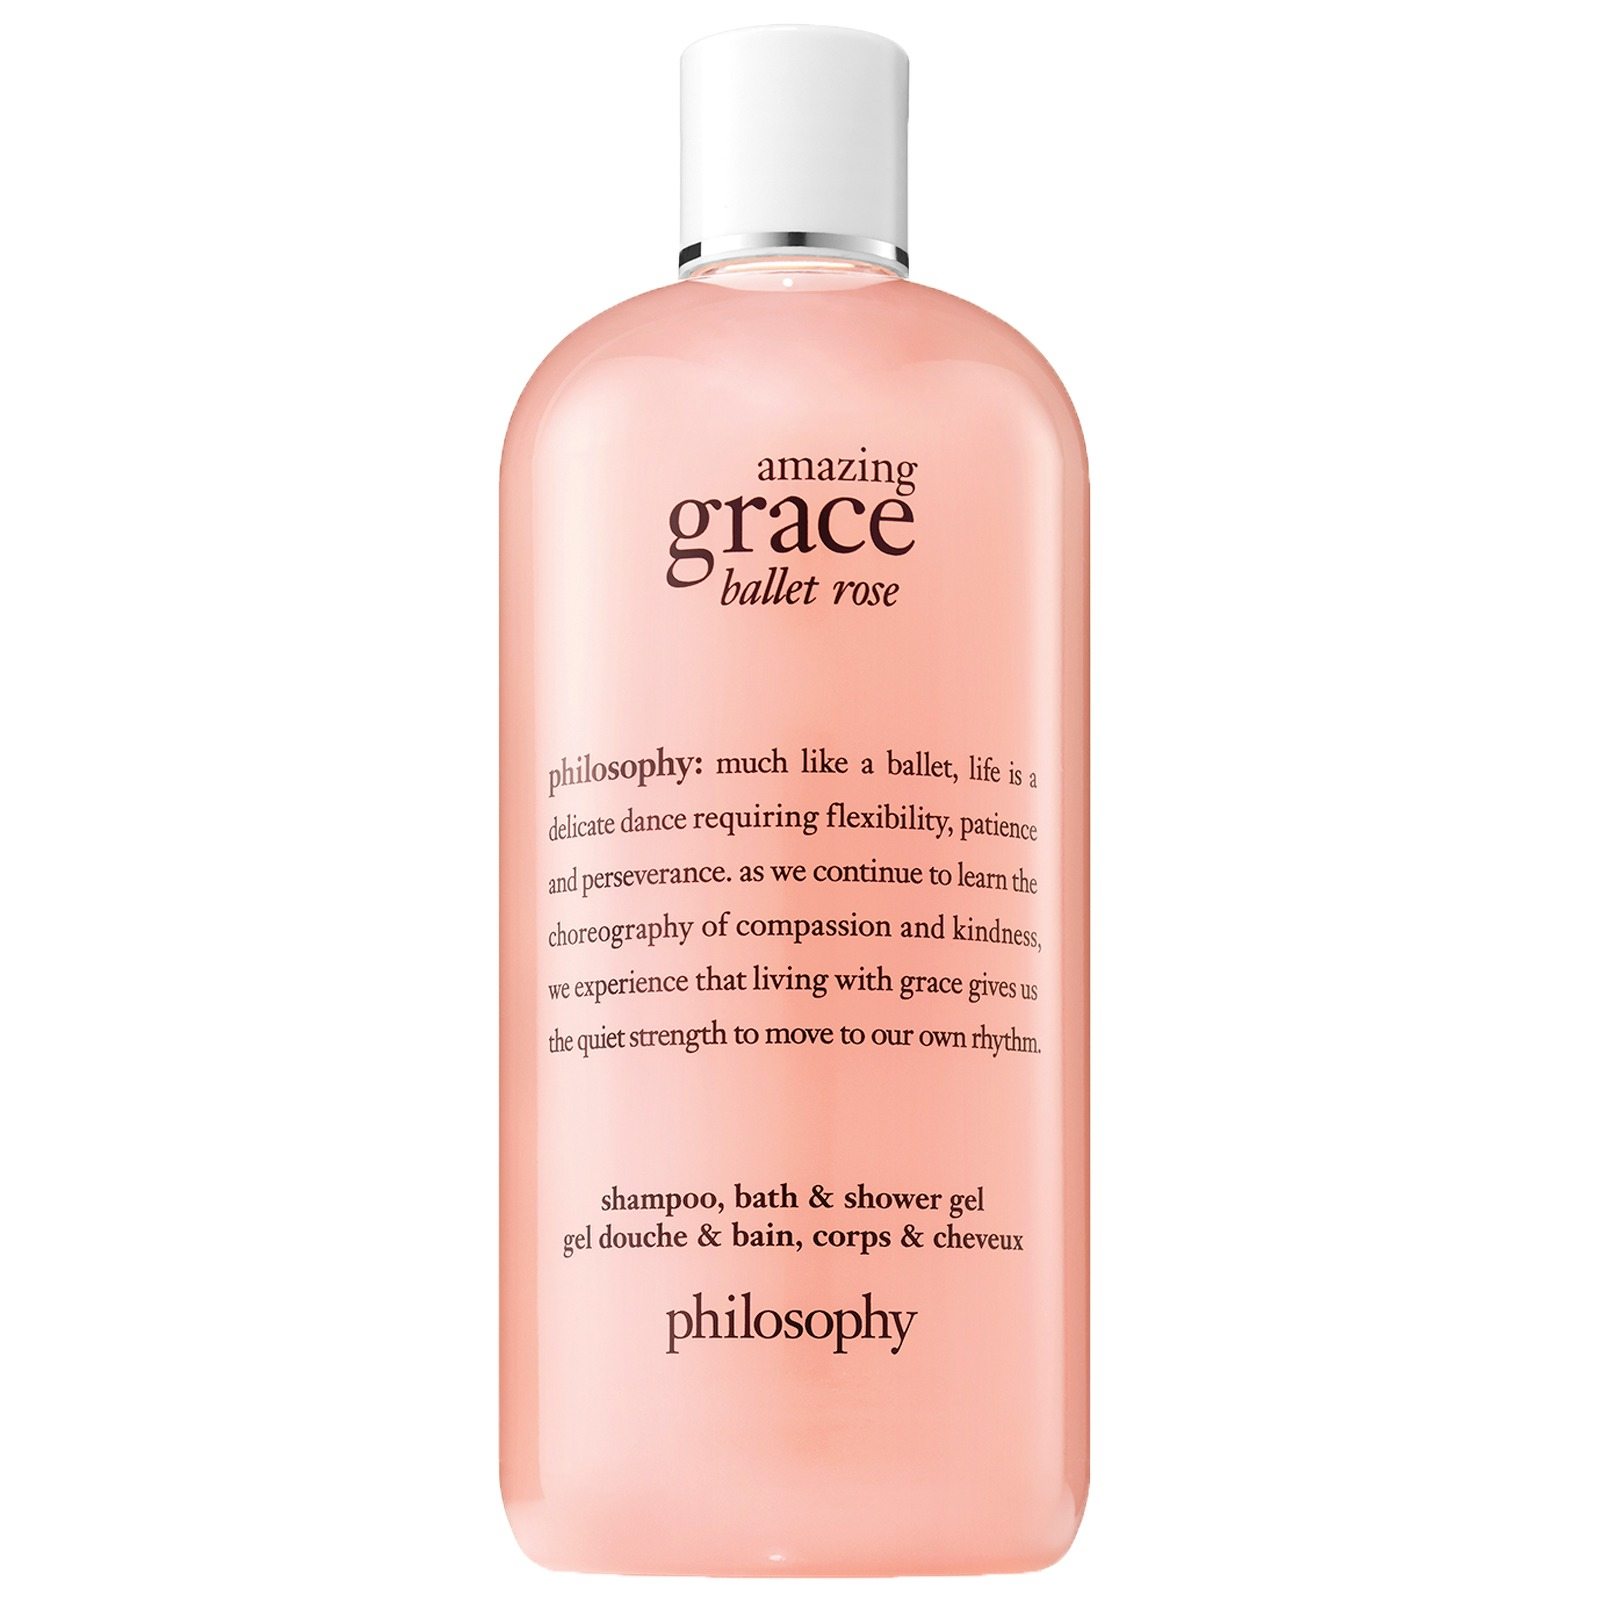 philosophy Amazing Grace Ballet Rose Shampoo, Bath & Shower Gel 480ml